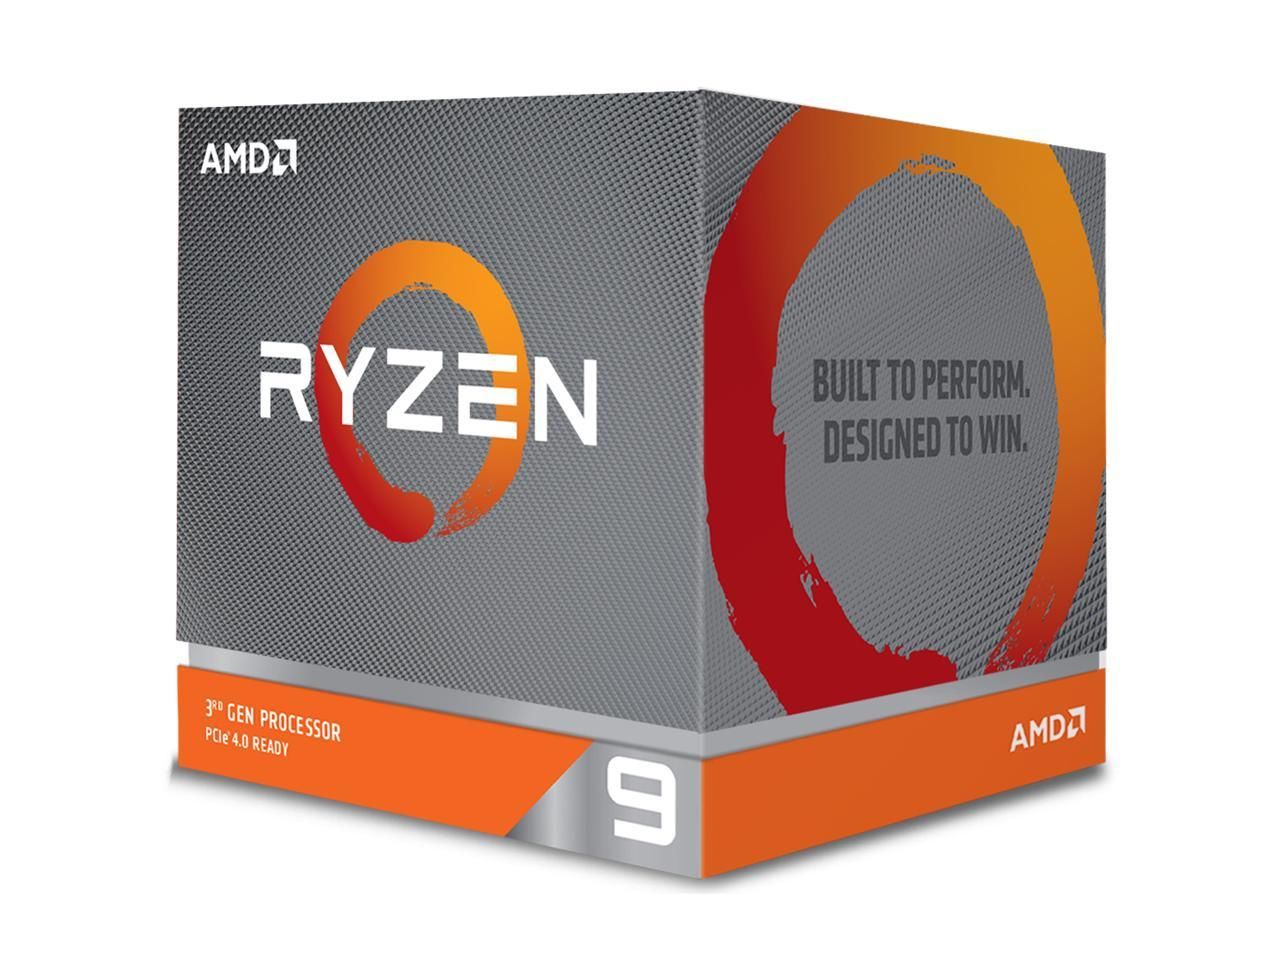 AMD Ryzen 9 3900X 12-Core 3.8GHz Socket AM4 Desktop Processor